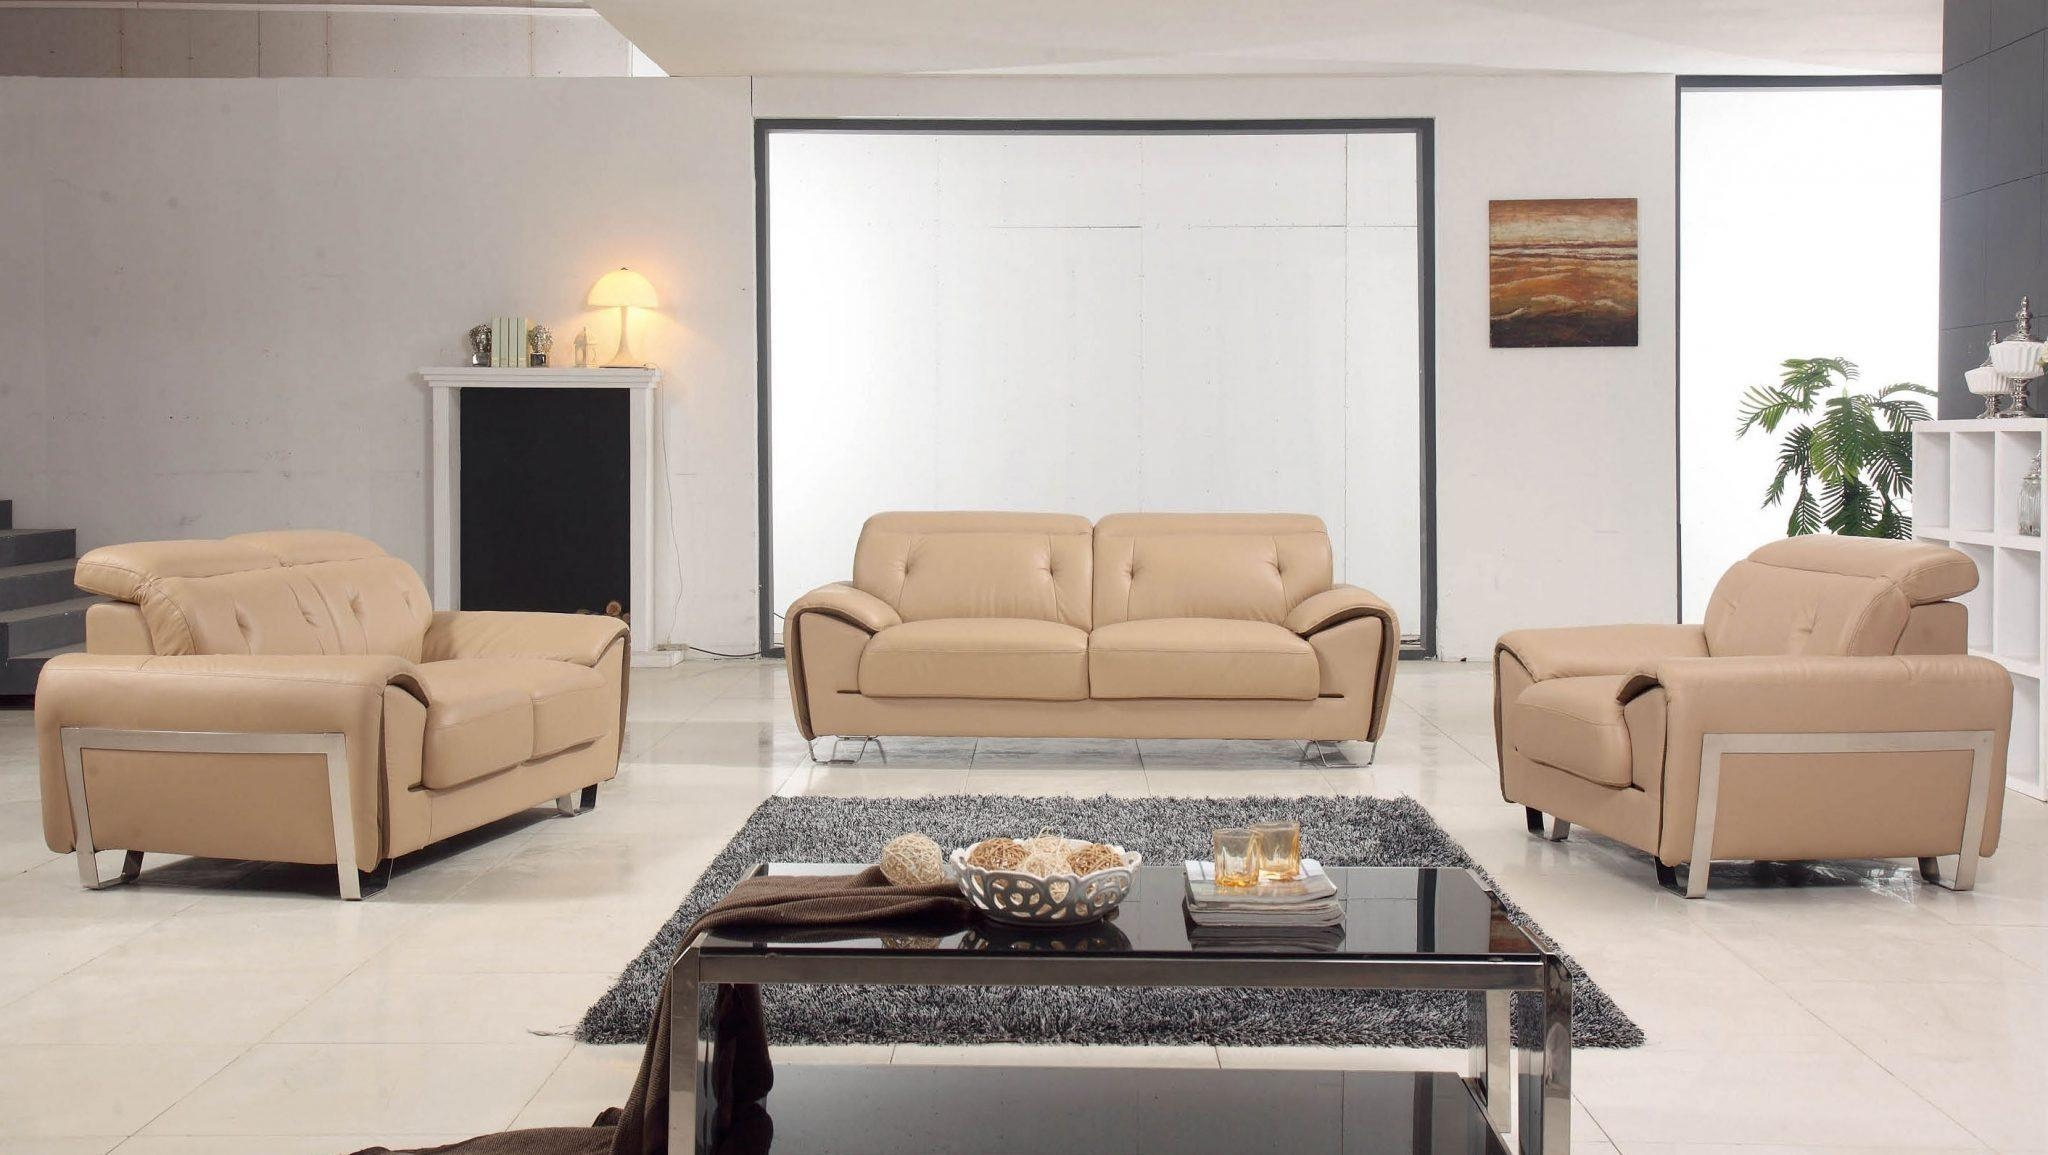 Sleeper Sofa Los Angeles With Concept Hd Images 31697 | Kengire With Los Angeles Sleeper Sofas (View 18 of 20)